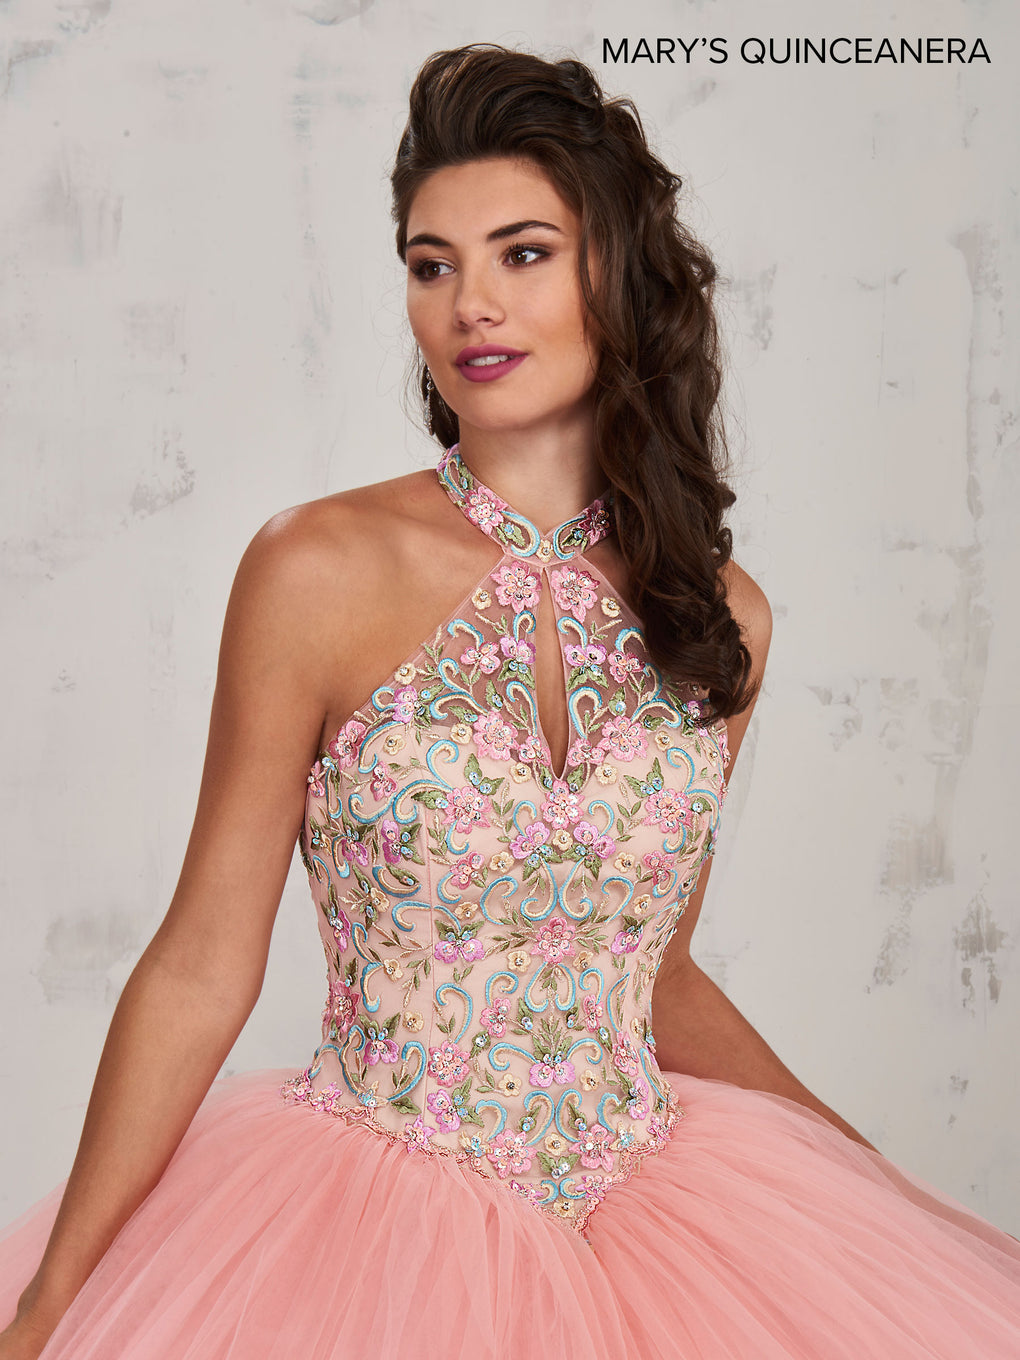 Marys Quinceanera Dresses in Pink/Champagne, Light Blue/Champagne, or White Color